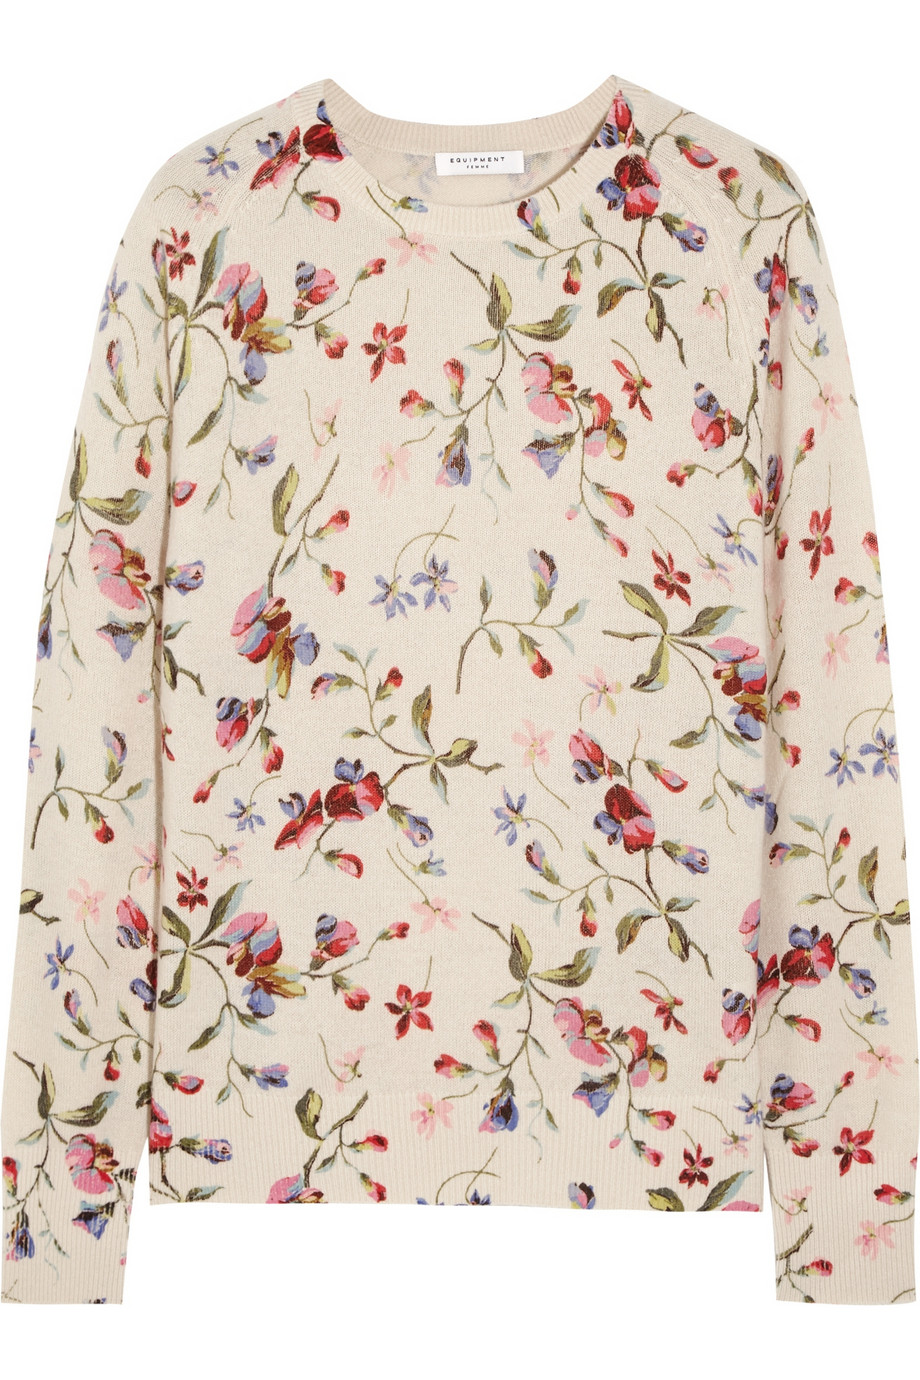 Sloane floral-print cashmere sweater – 55% at THE OUTNET.COM